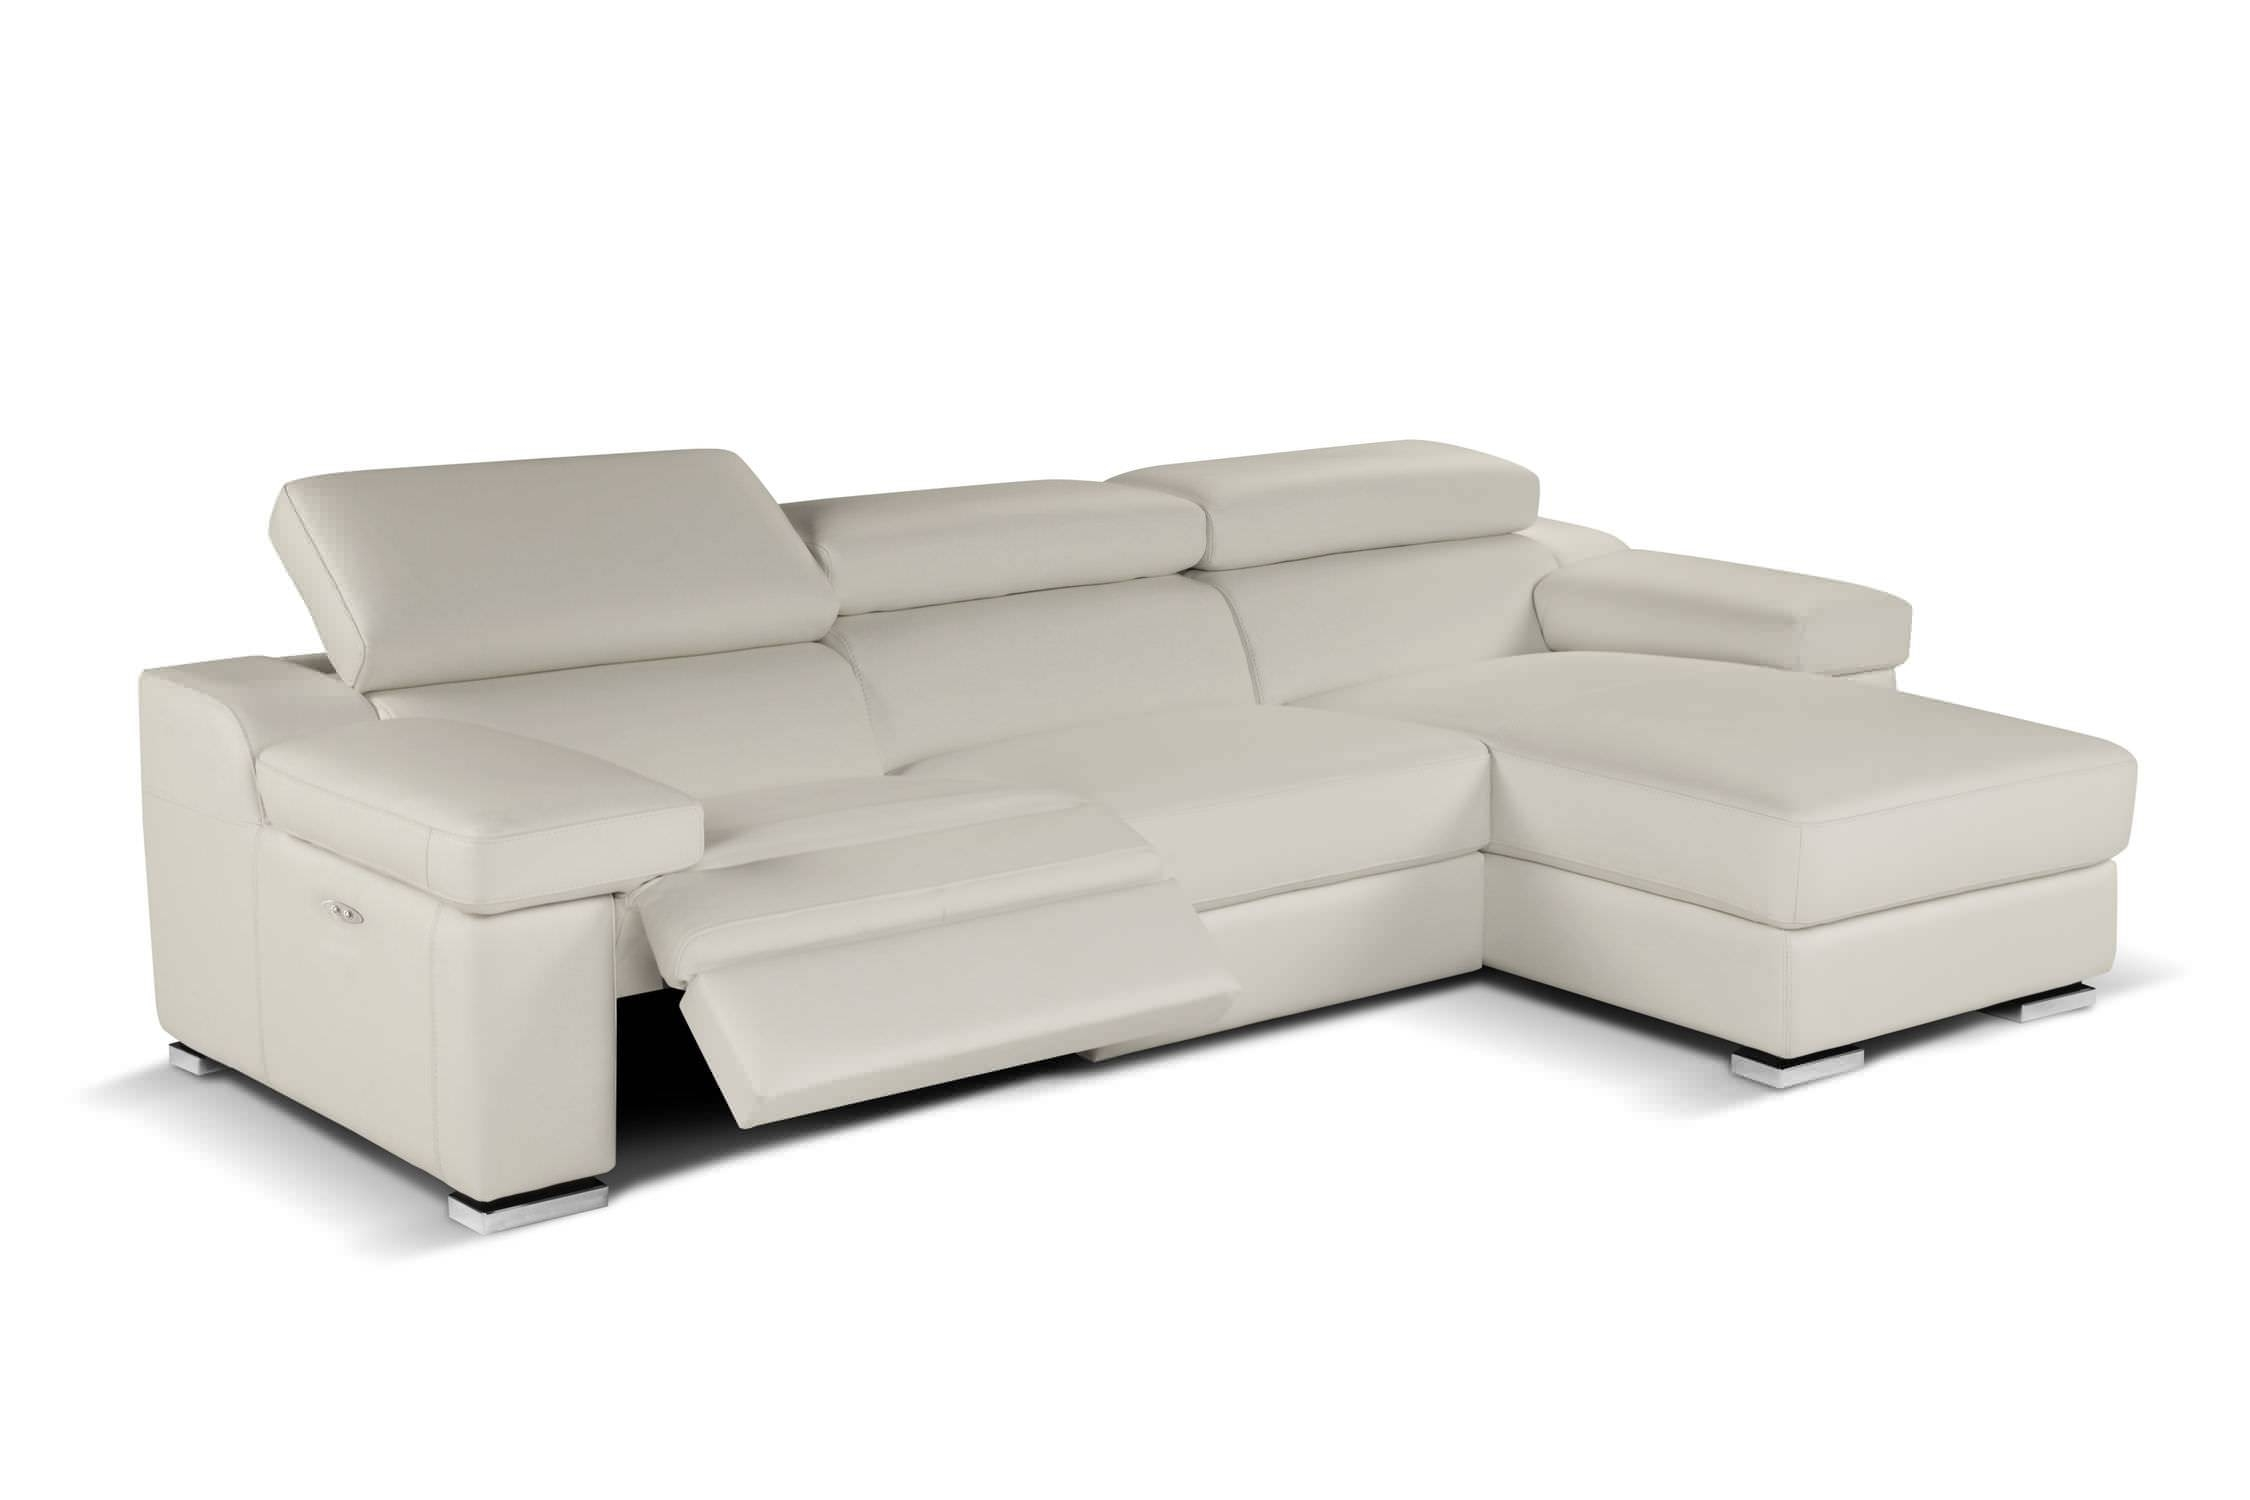 Contemporary Sofa / Leather / 2-Seater / Reclining - Rebecca inside Modern Reclining Leather Sofas (Image 3 of 30)